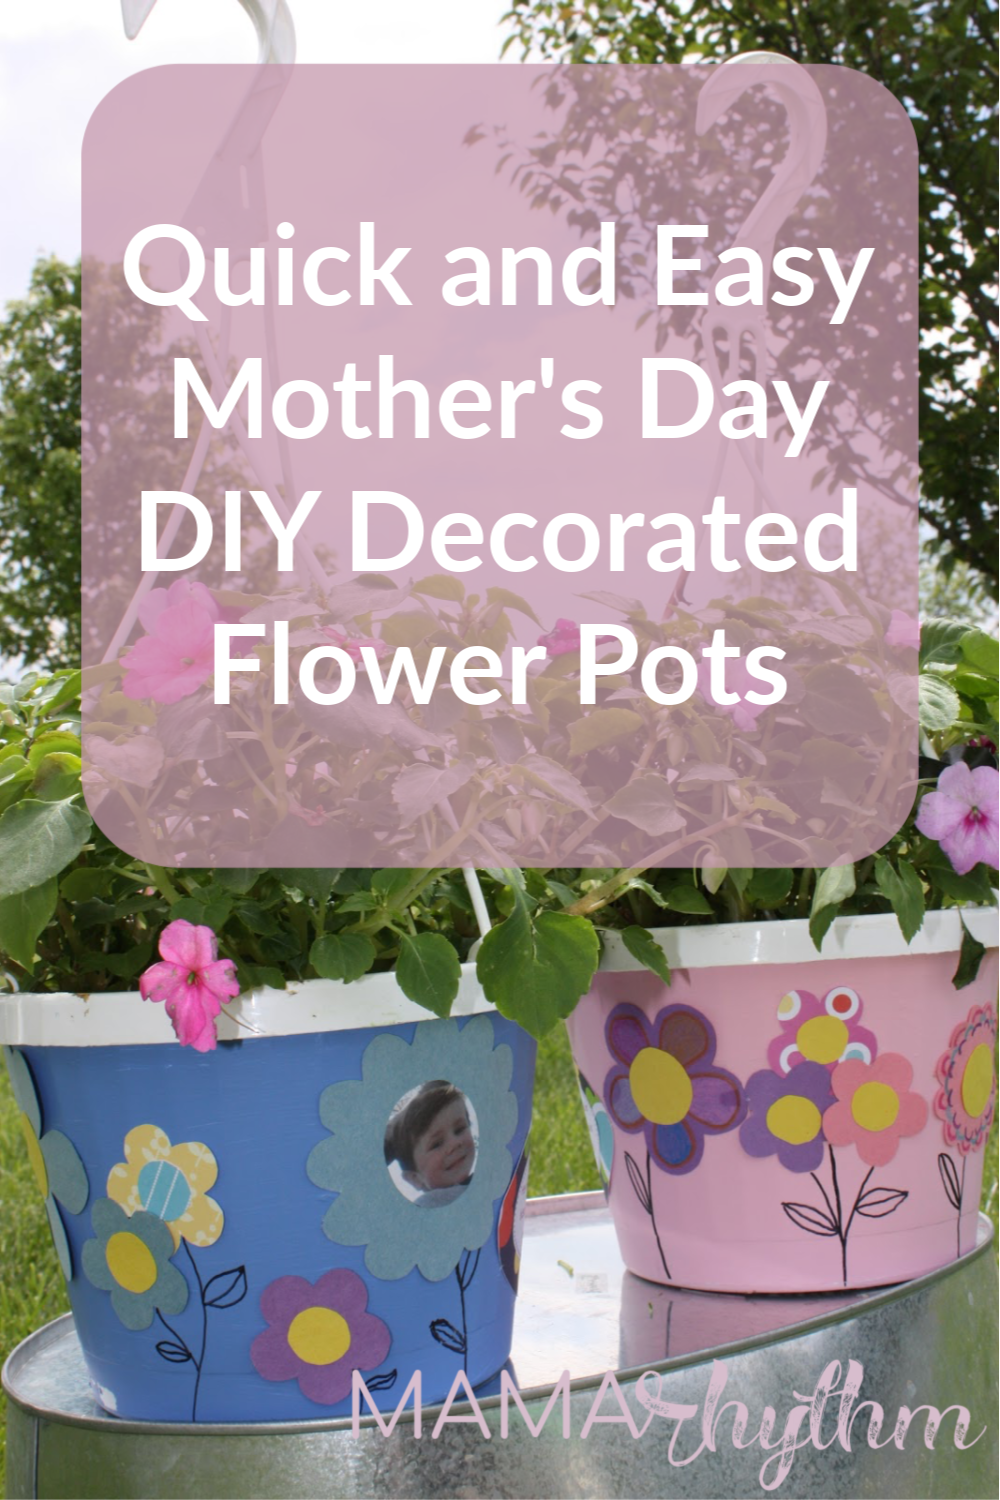 Quick and Easy Mother's Day DIY Decorated Flower Pots. Fun, cheap, and easy. Adorable gift kids can help make.